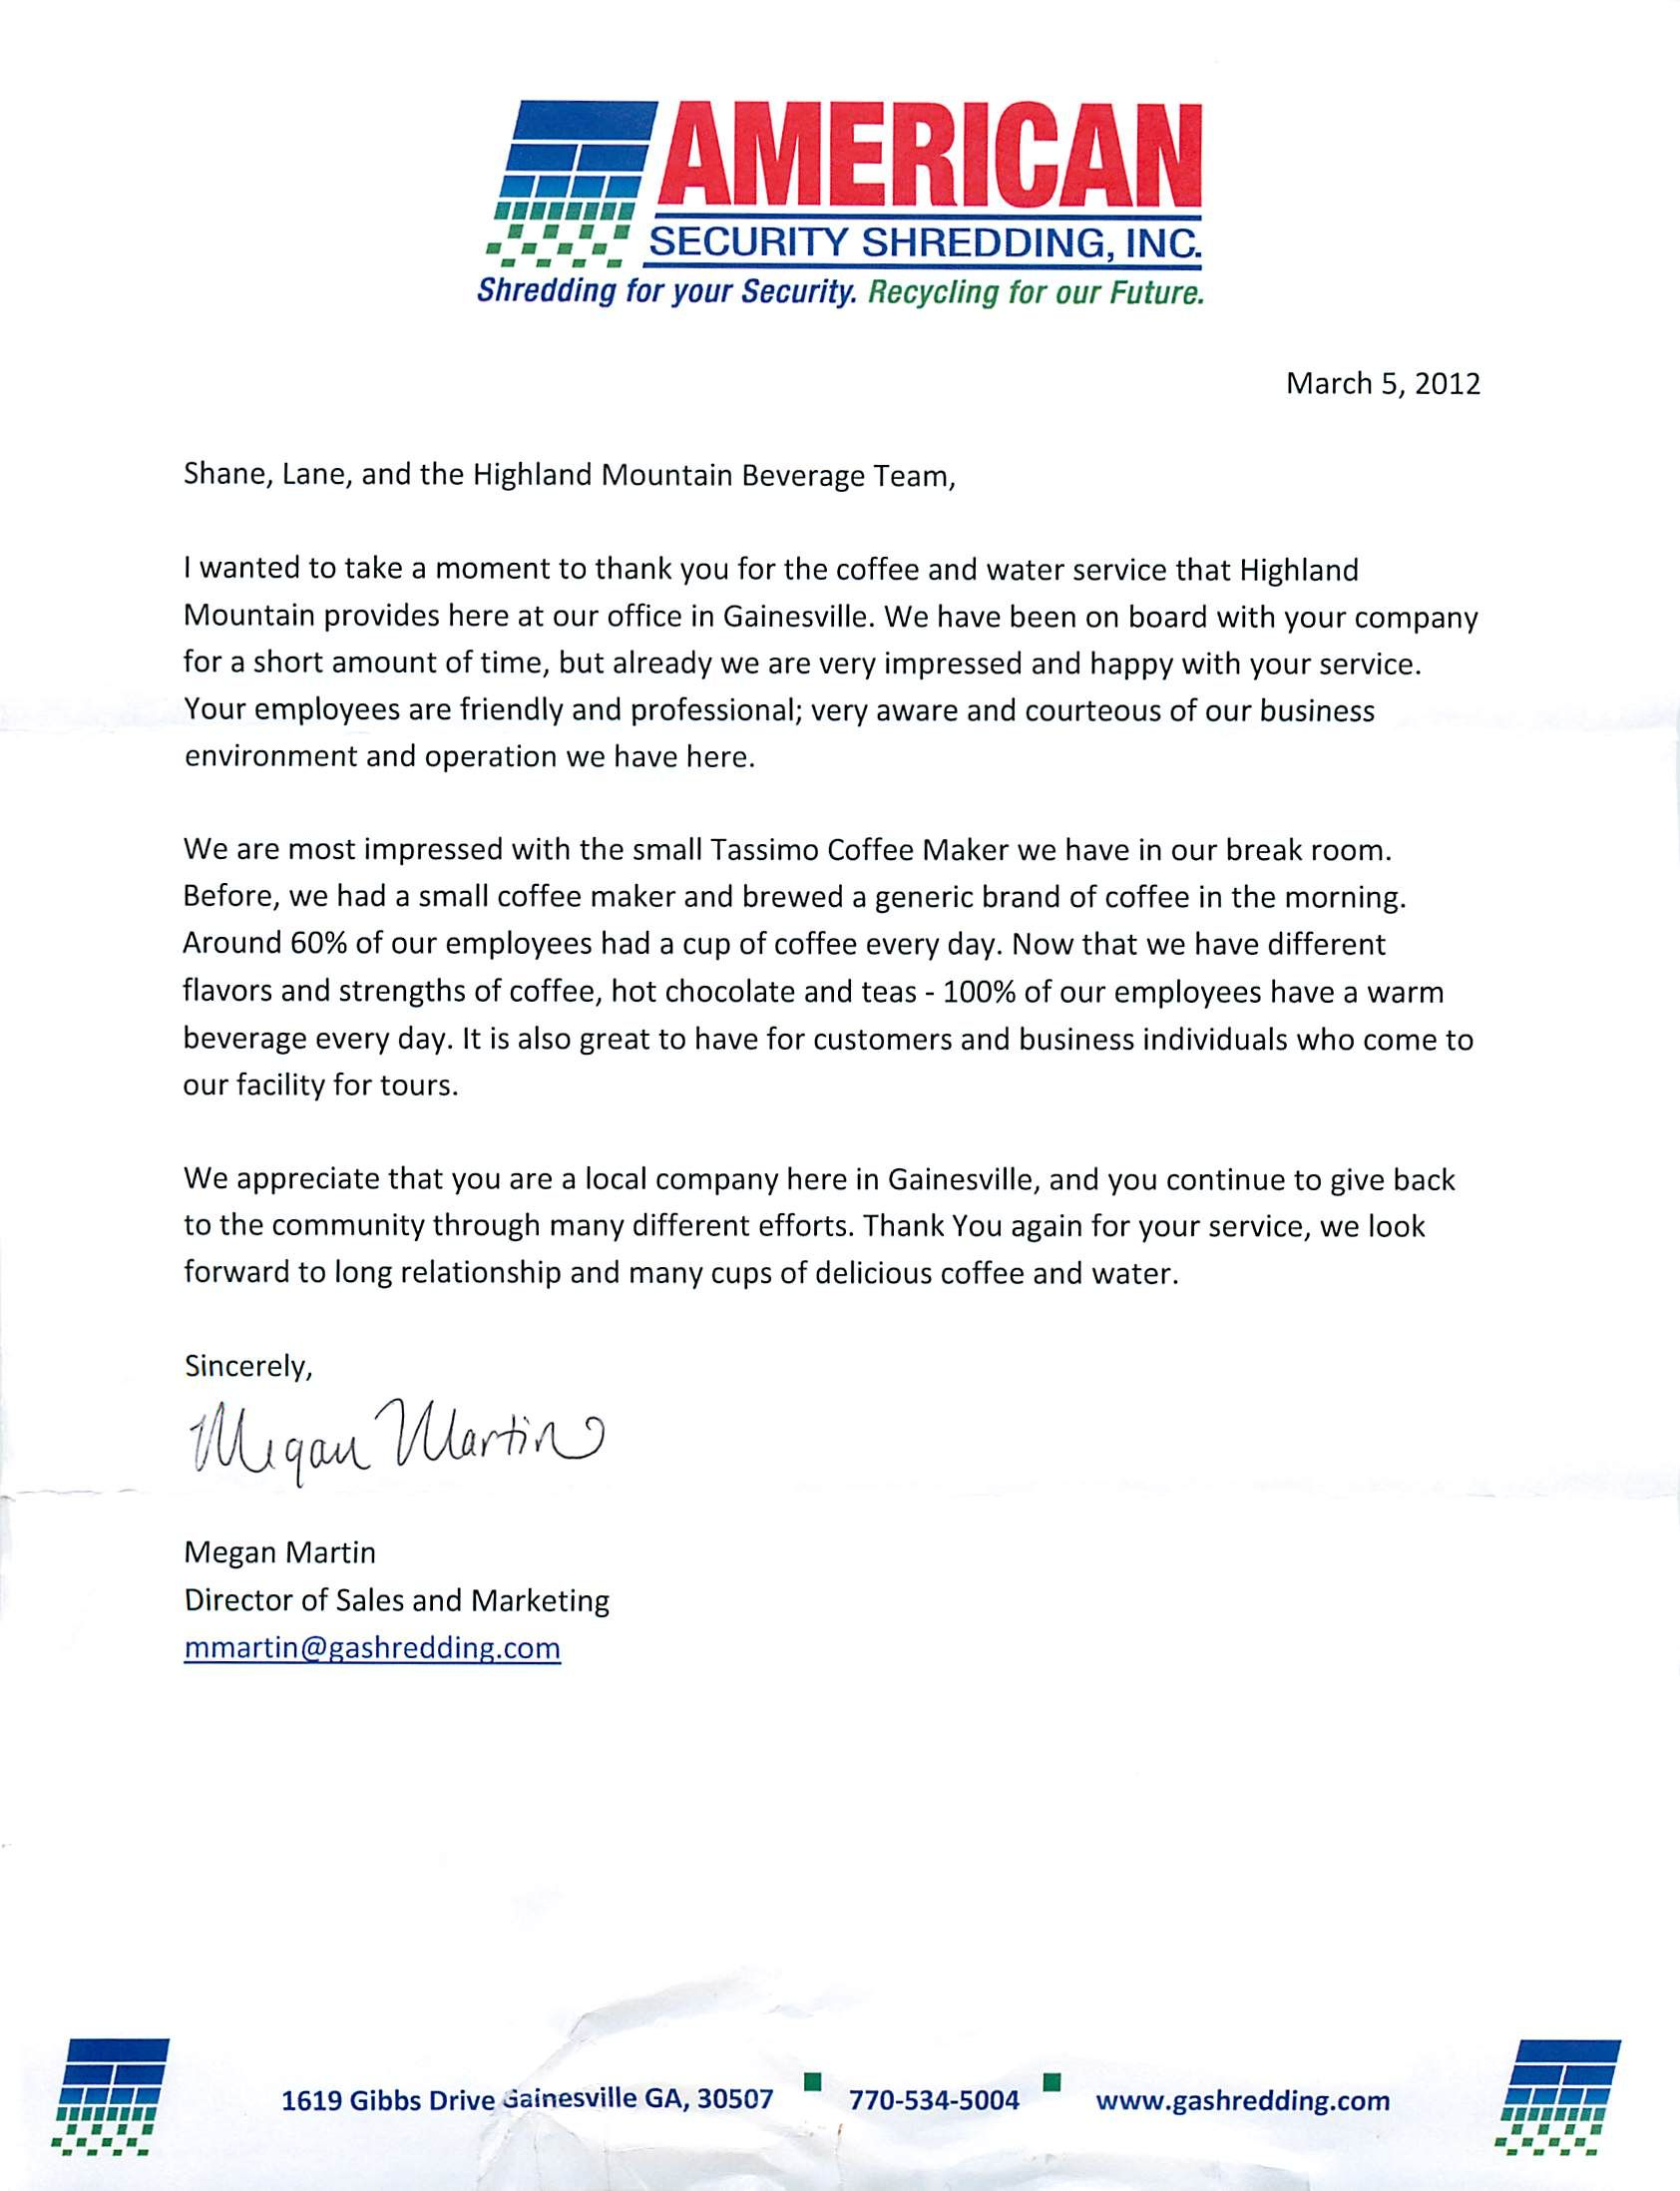 Customer Appreciation Letter Highland Mountain Water For Your